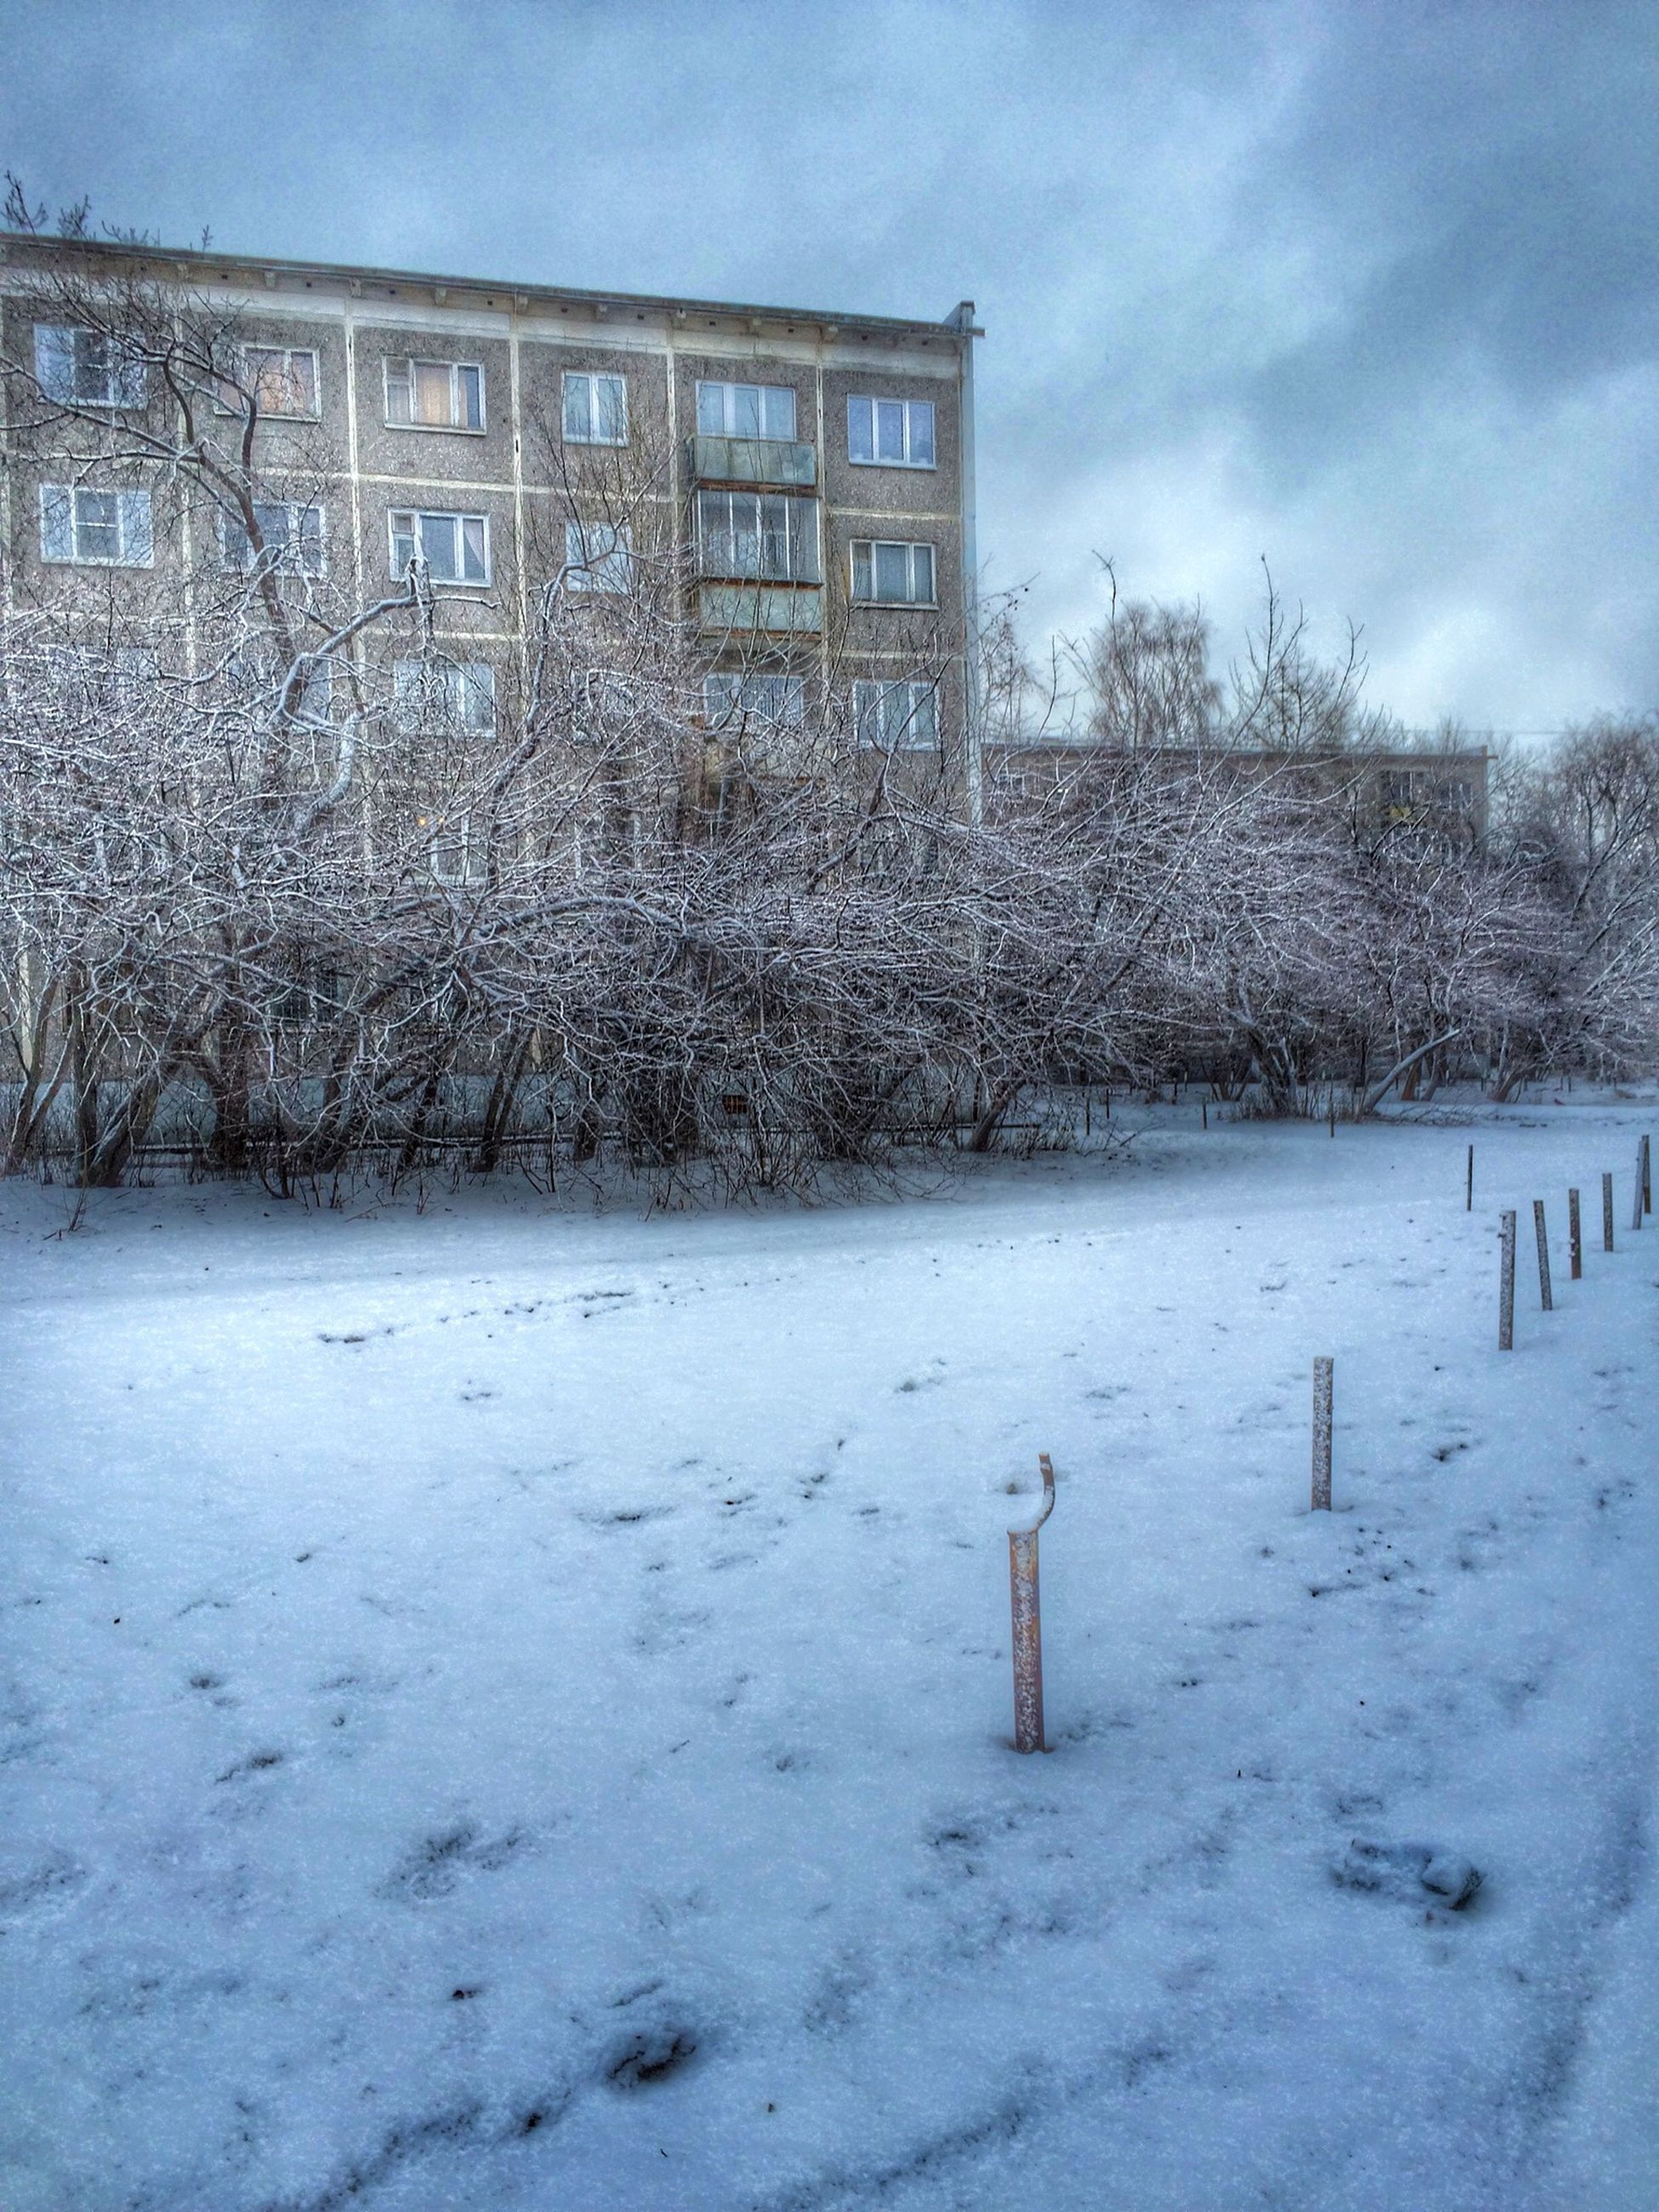 snow, winter, cold temperature, season, weather, building exterior, architecture, built structure, sky, covering, field, tree, white color, nature, landscape, house, day, cloud - sky, covered, tranquility